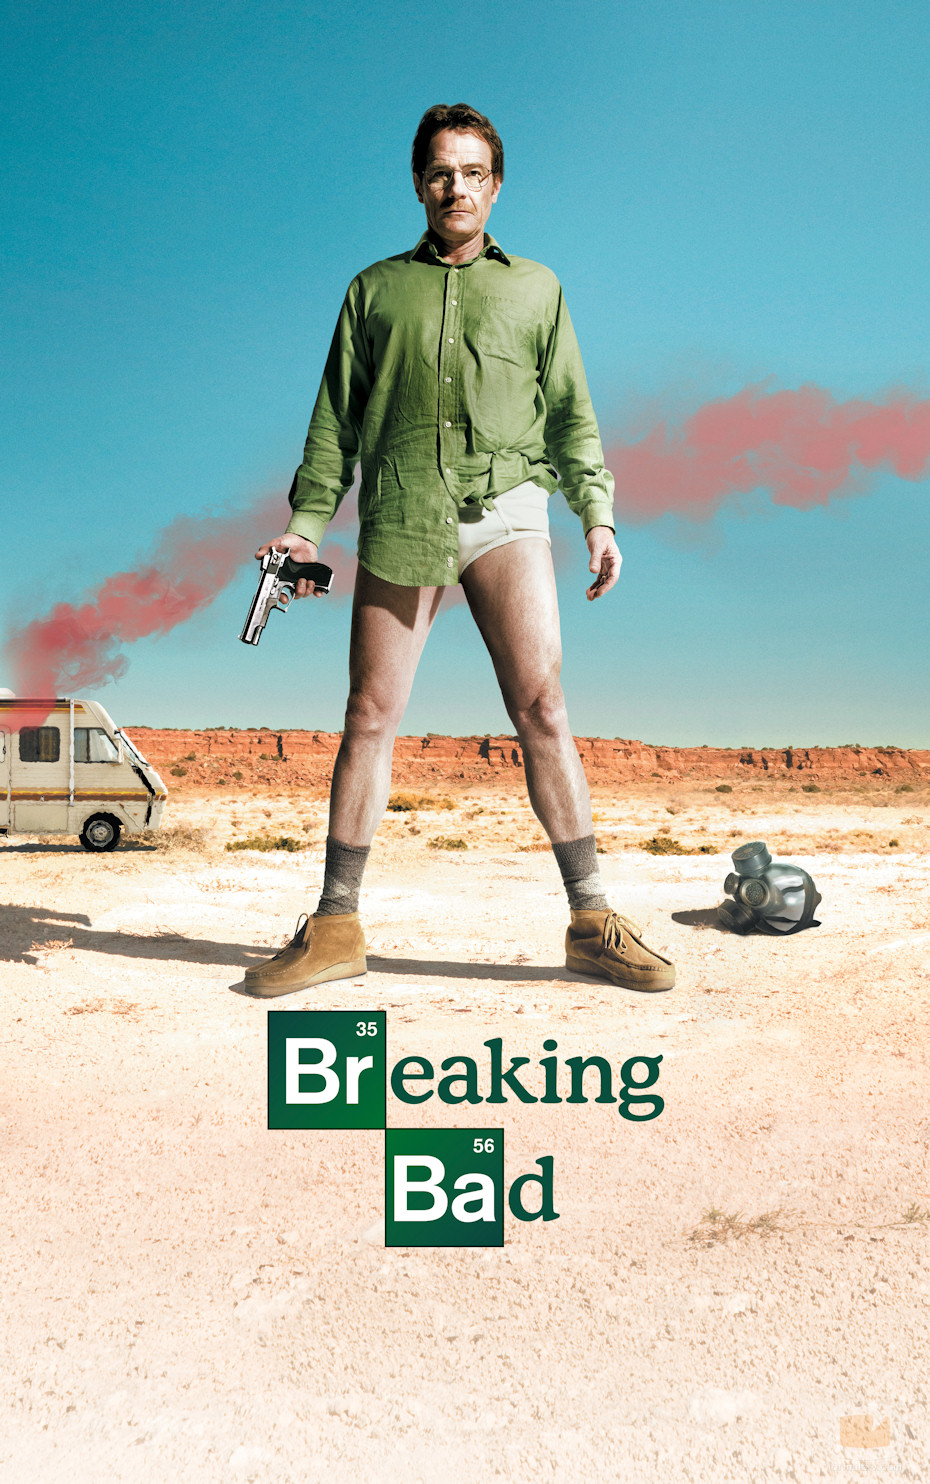 41 best images about Breaking Bad on Pinterest | The internet ...